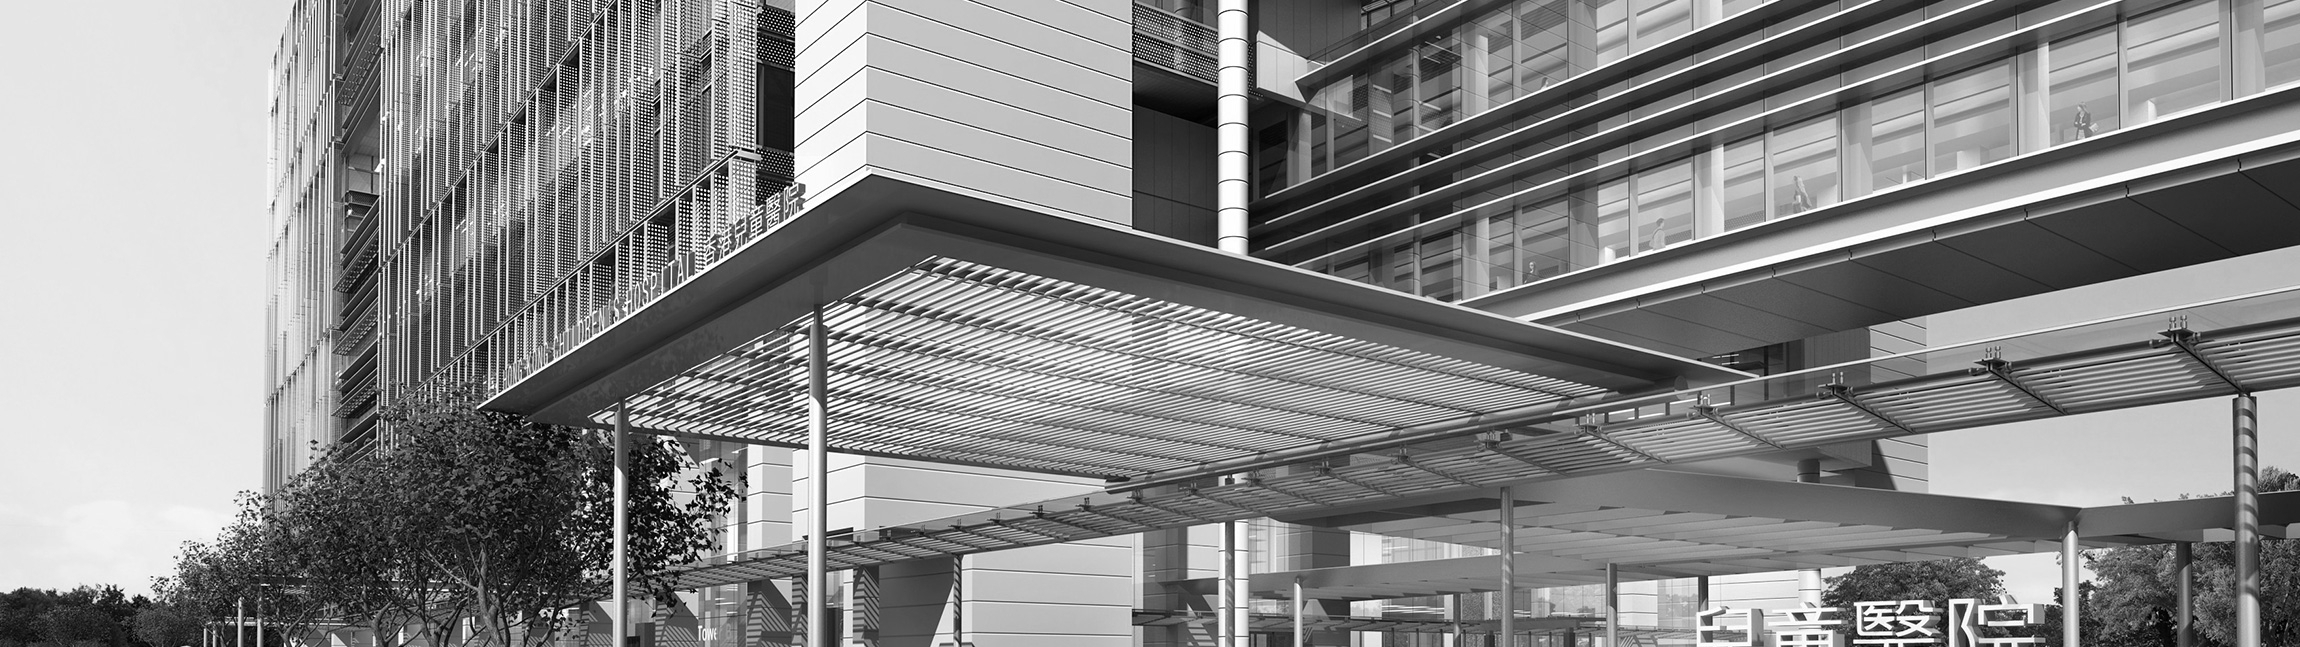 6-news-high-res